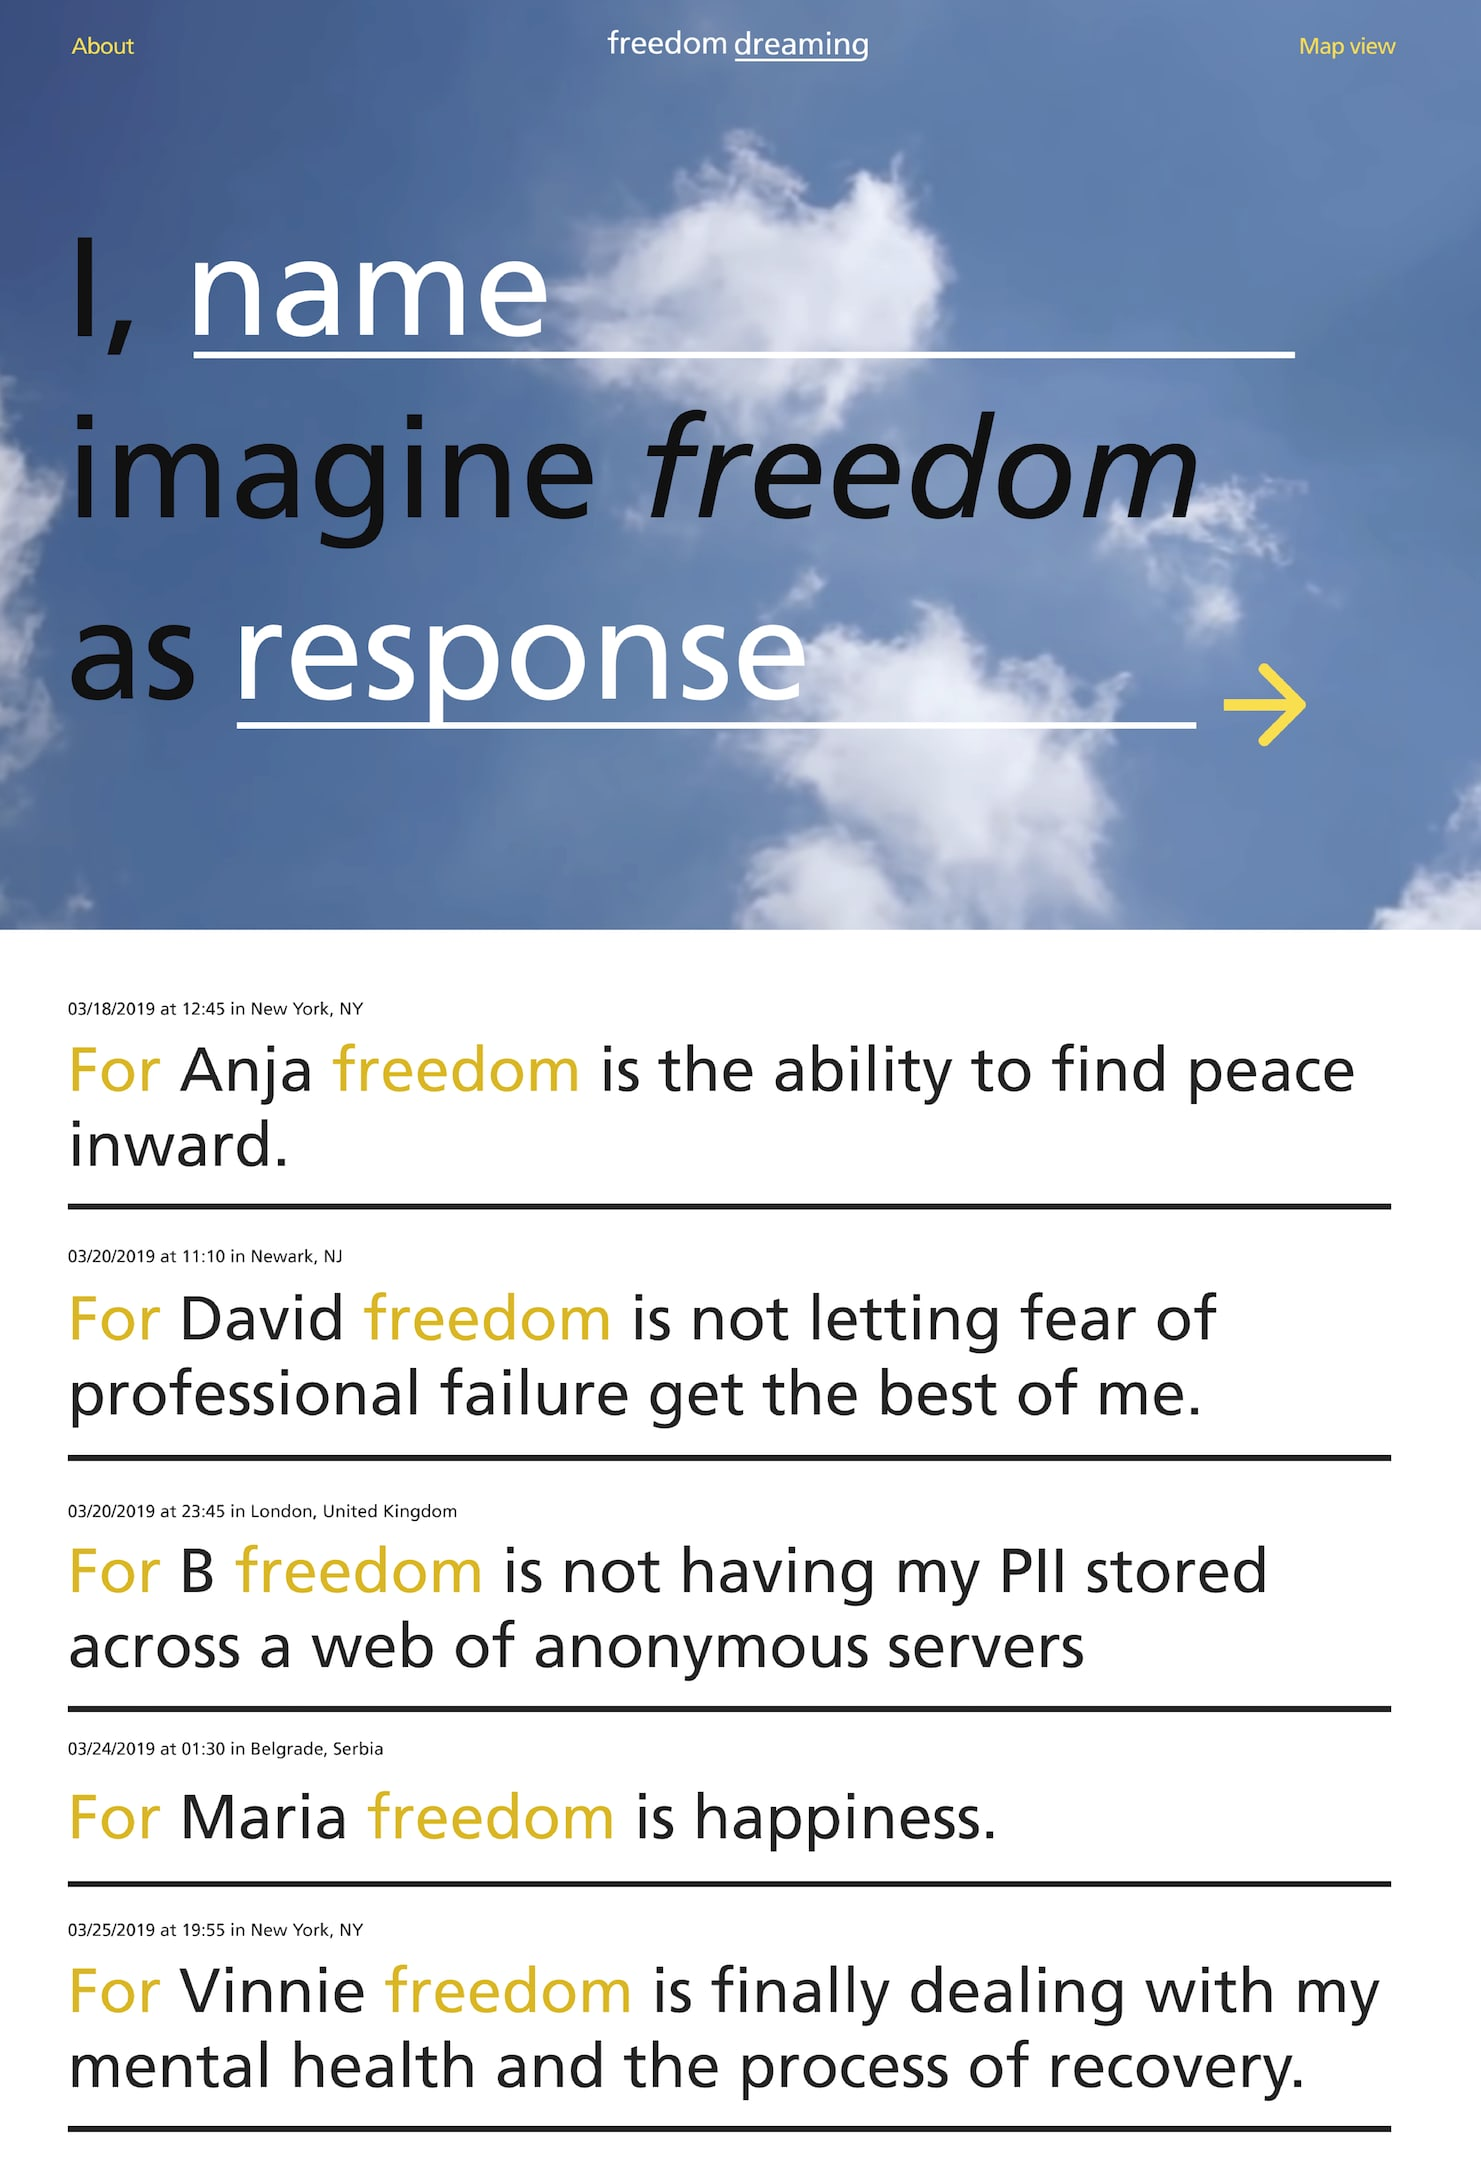 Tools of Introspection: Freedom Dreaming